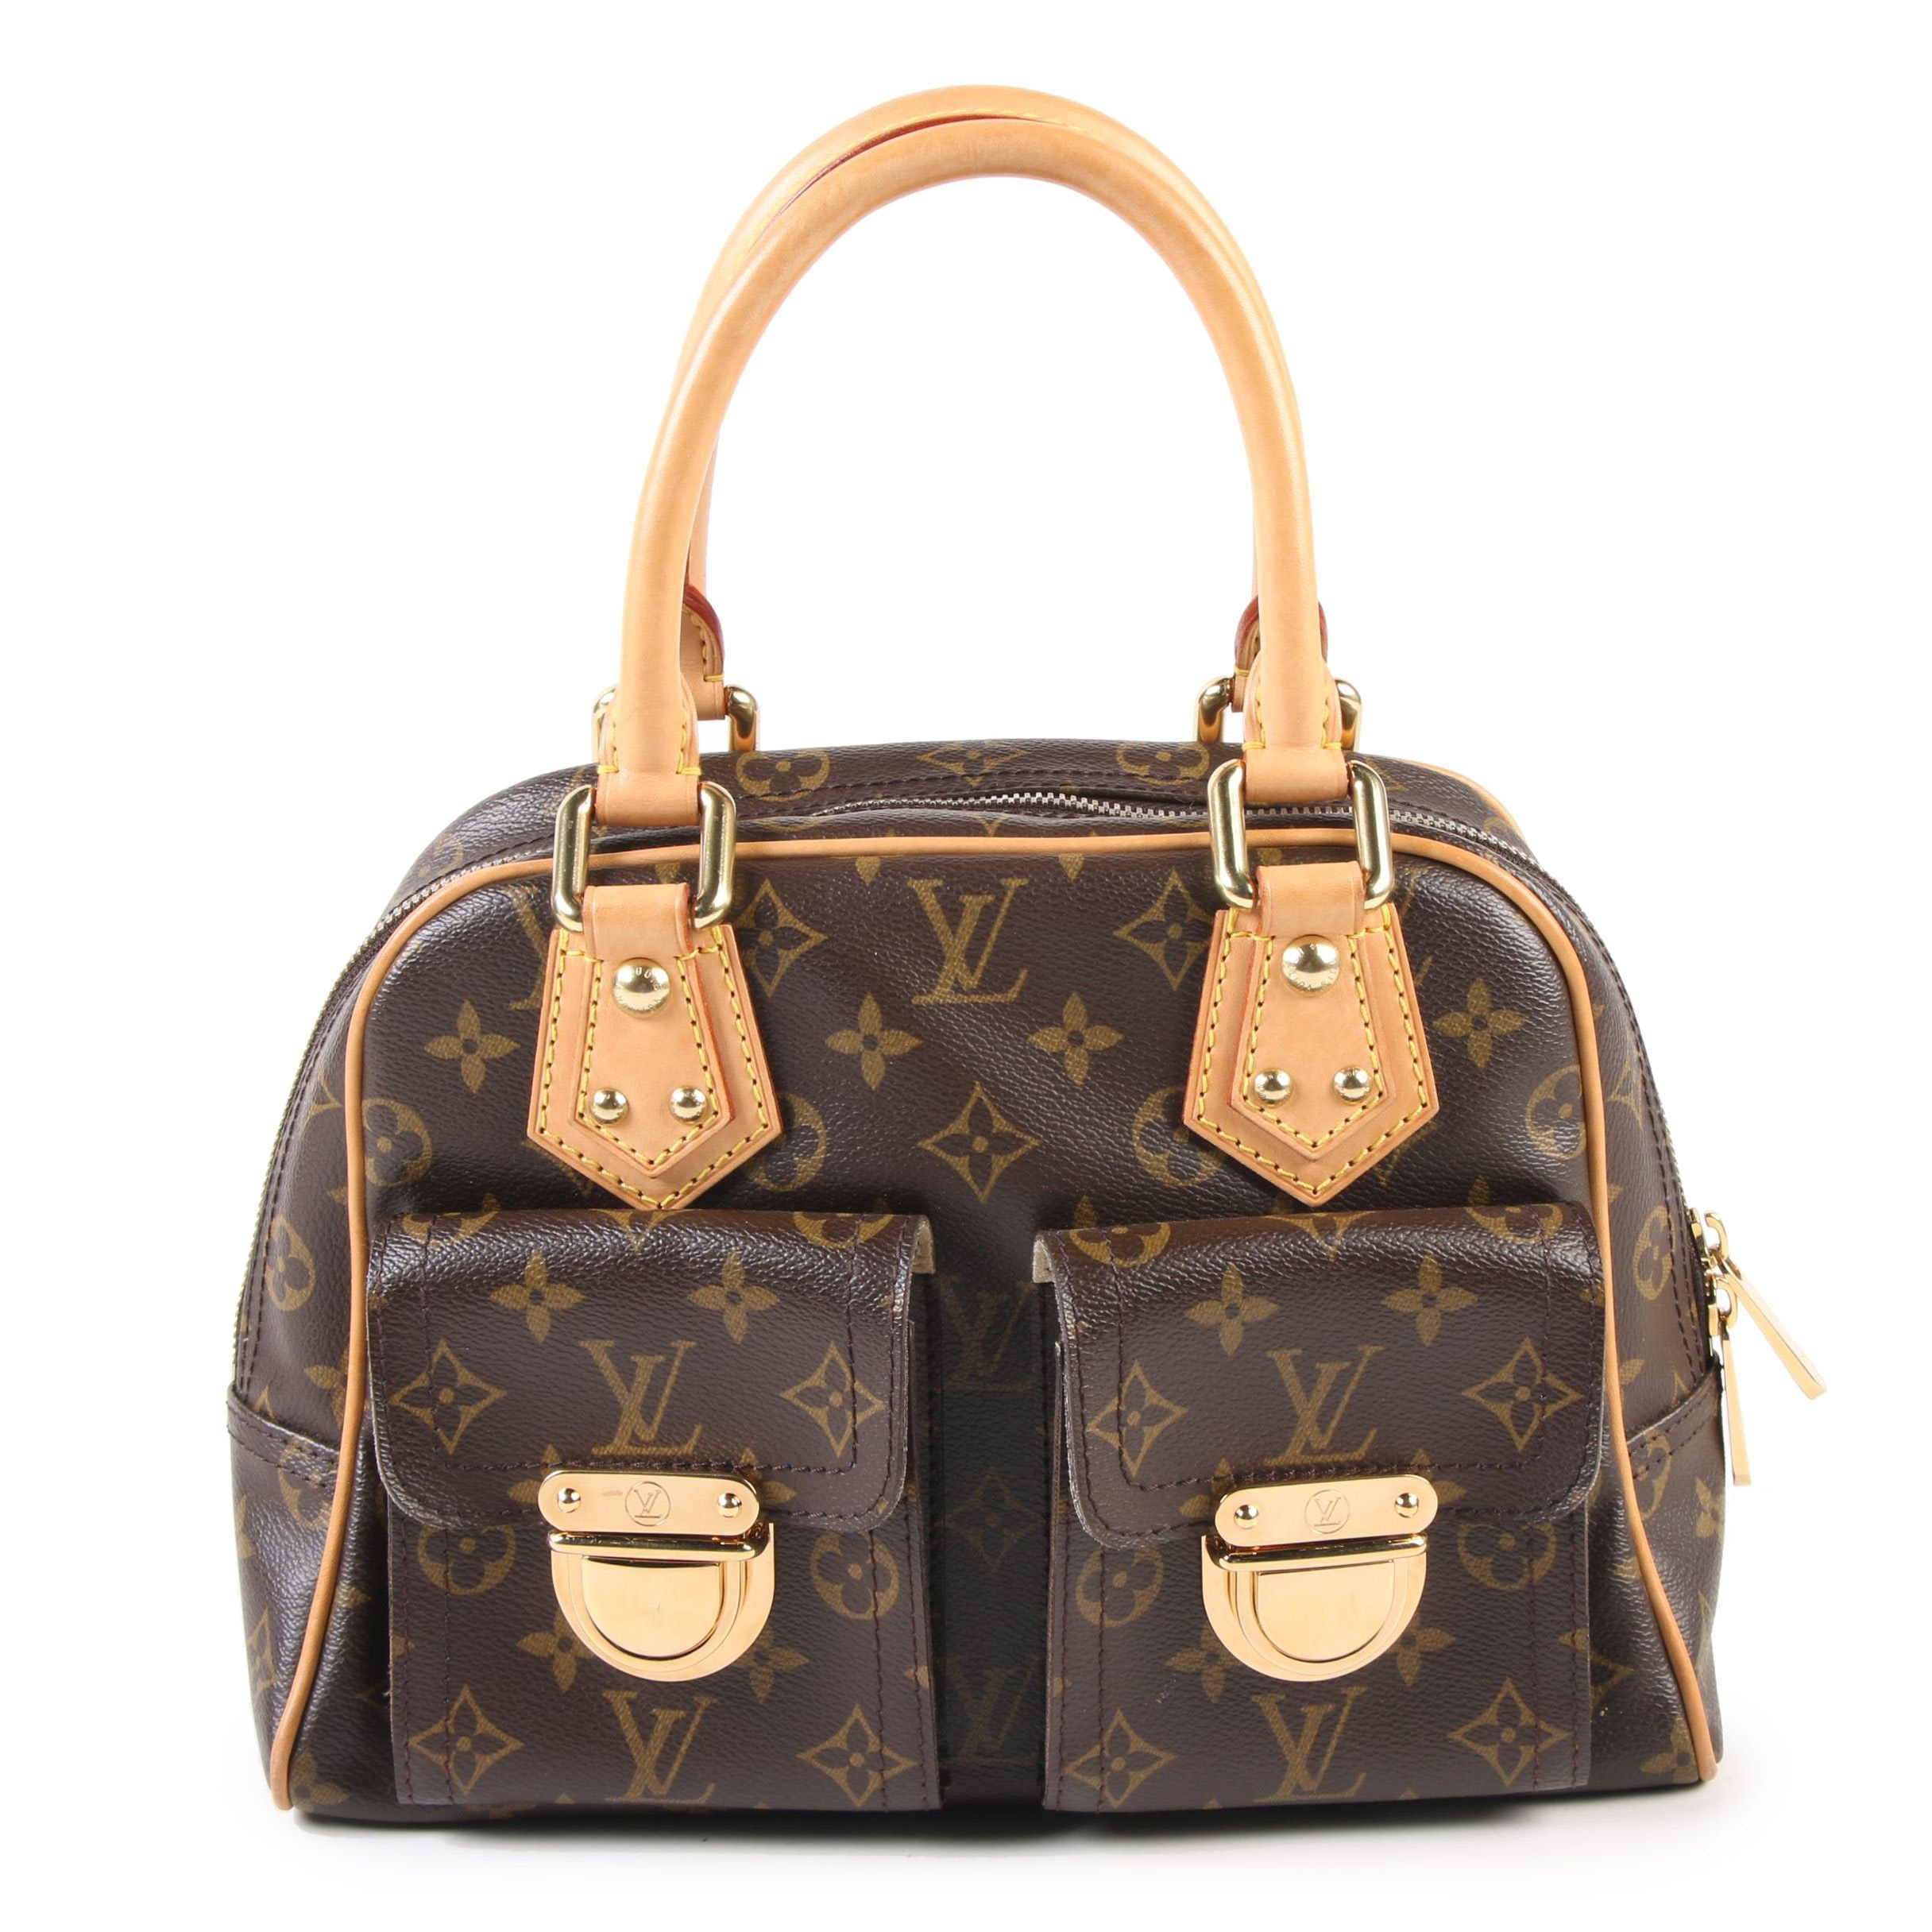 Louis Vuitton Manhattan PM Bag in Monogram Canvas and Vachetta Leather